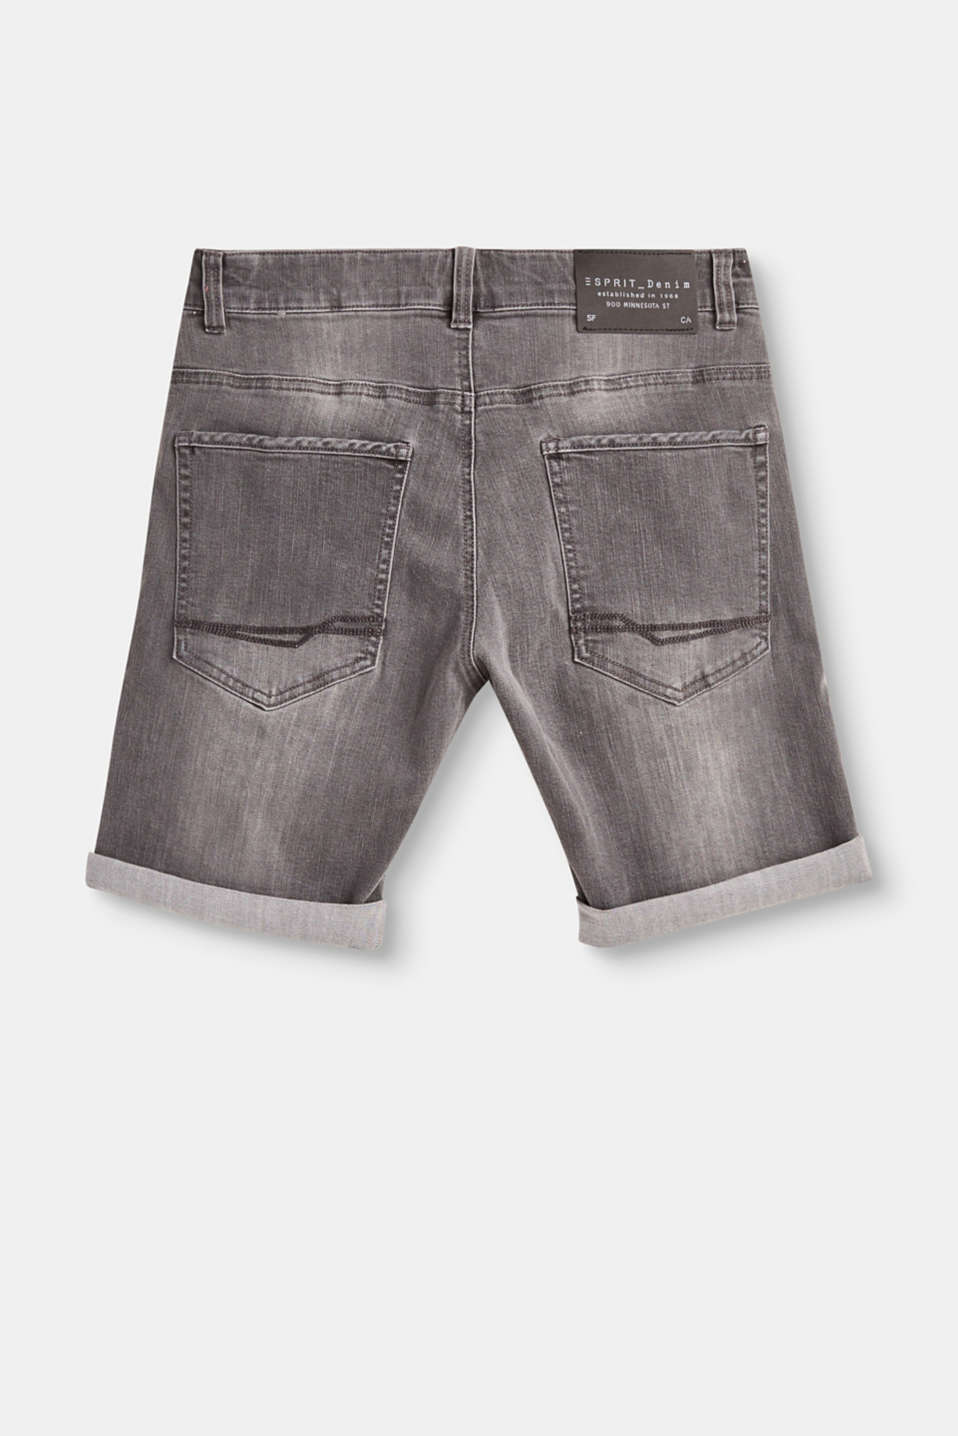 Jeans-Shorts aus Baumwoll-Stretch